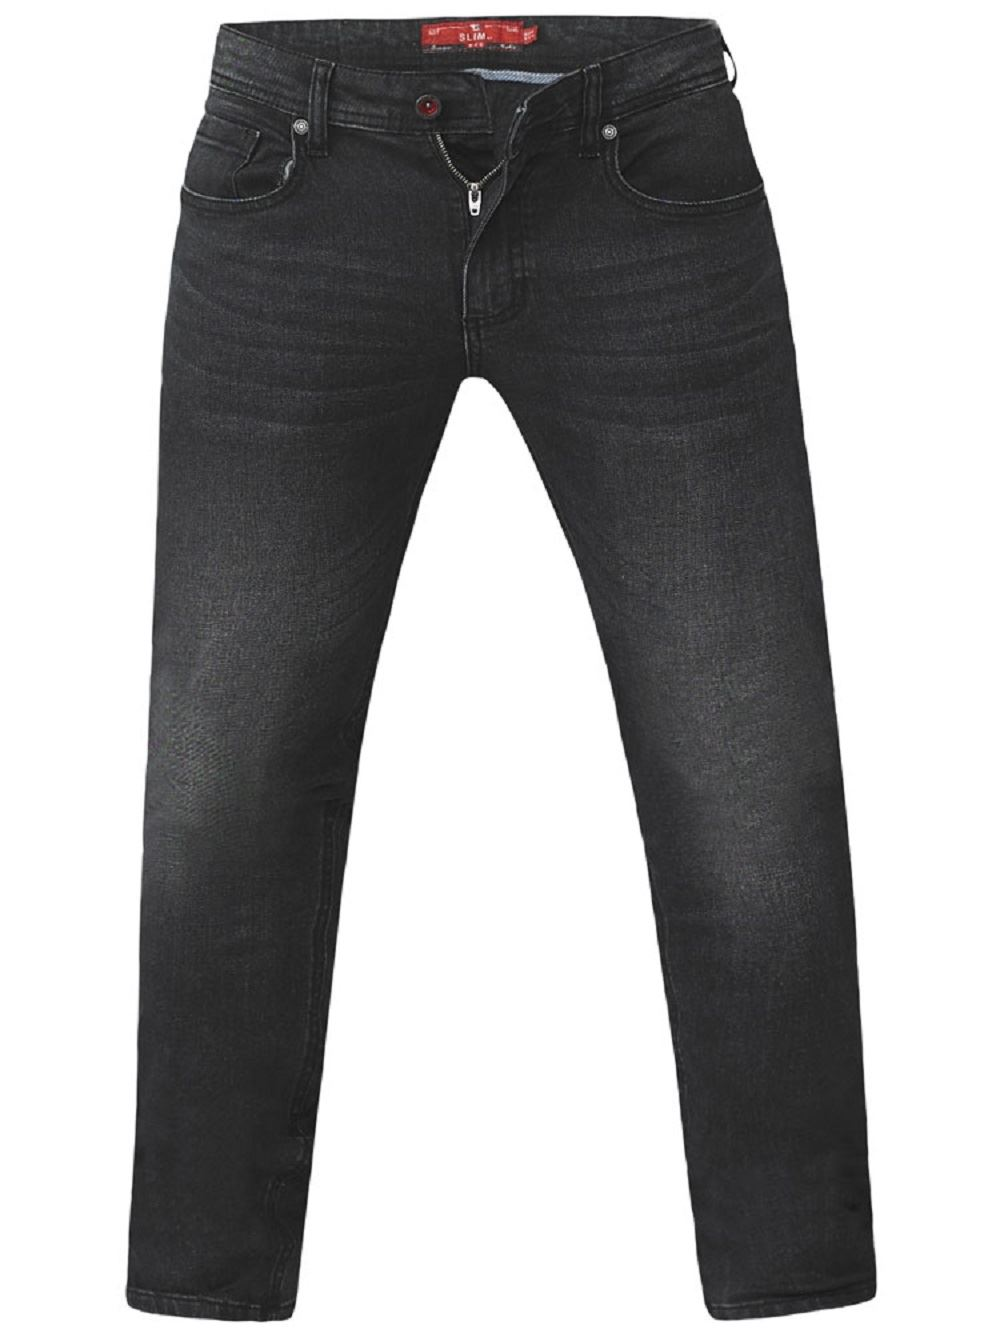 D555-Mens-Big-Size-Tapered-Fit-Stretch-Jeans-In-Grey-Stonewash-Benson thumbnail 13